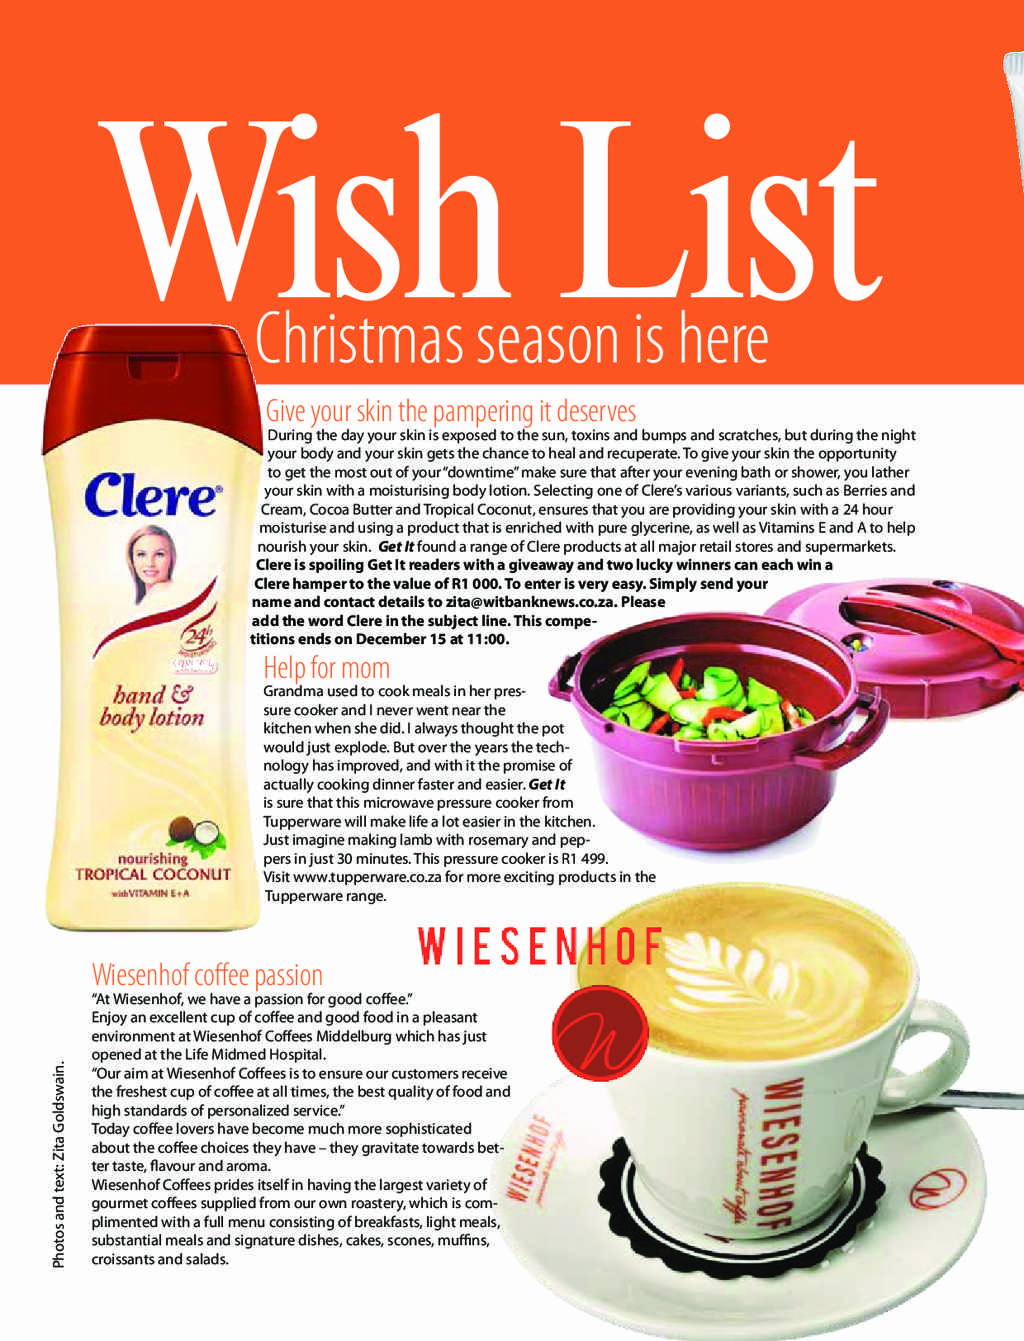 get-it-middelburg-december-2016-epapers-page-8